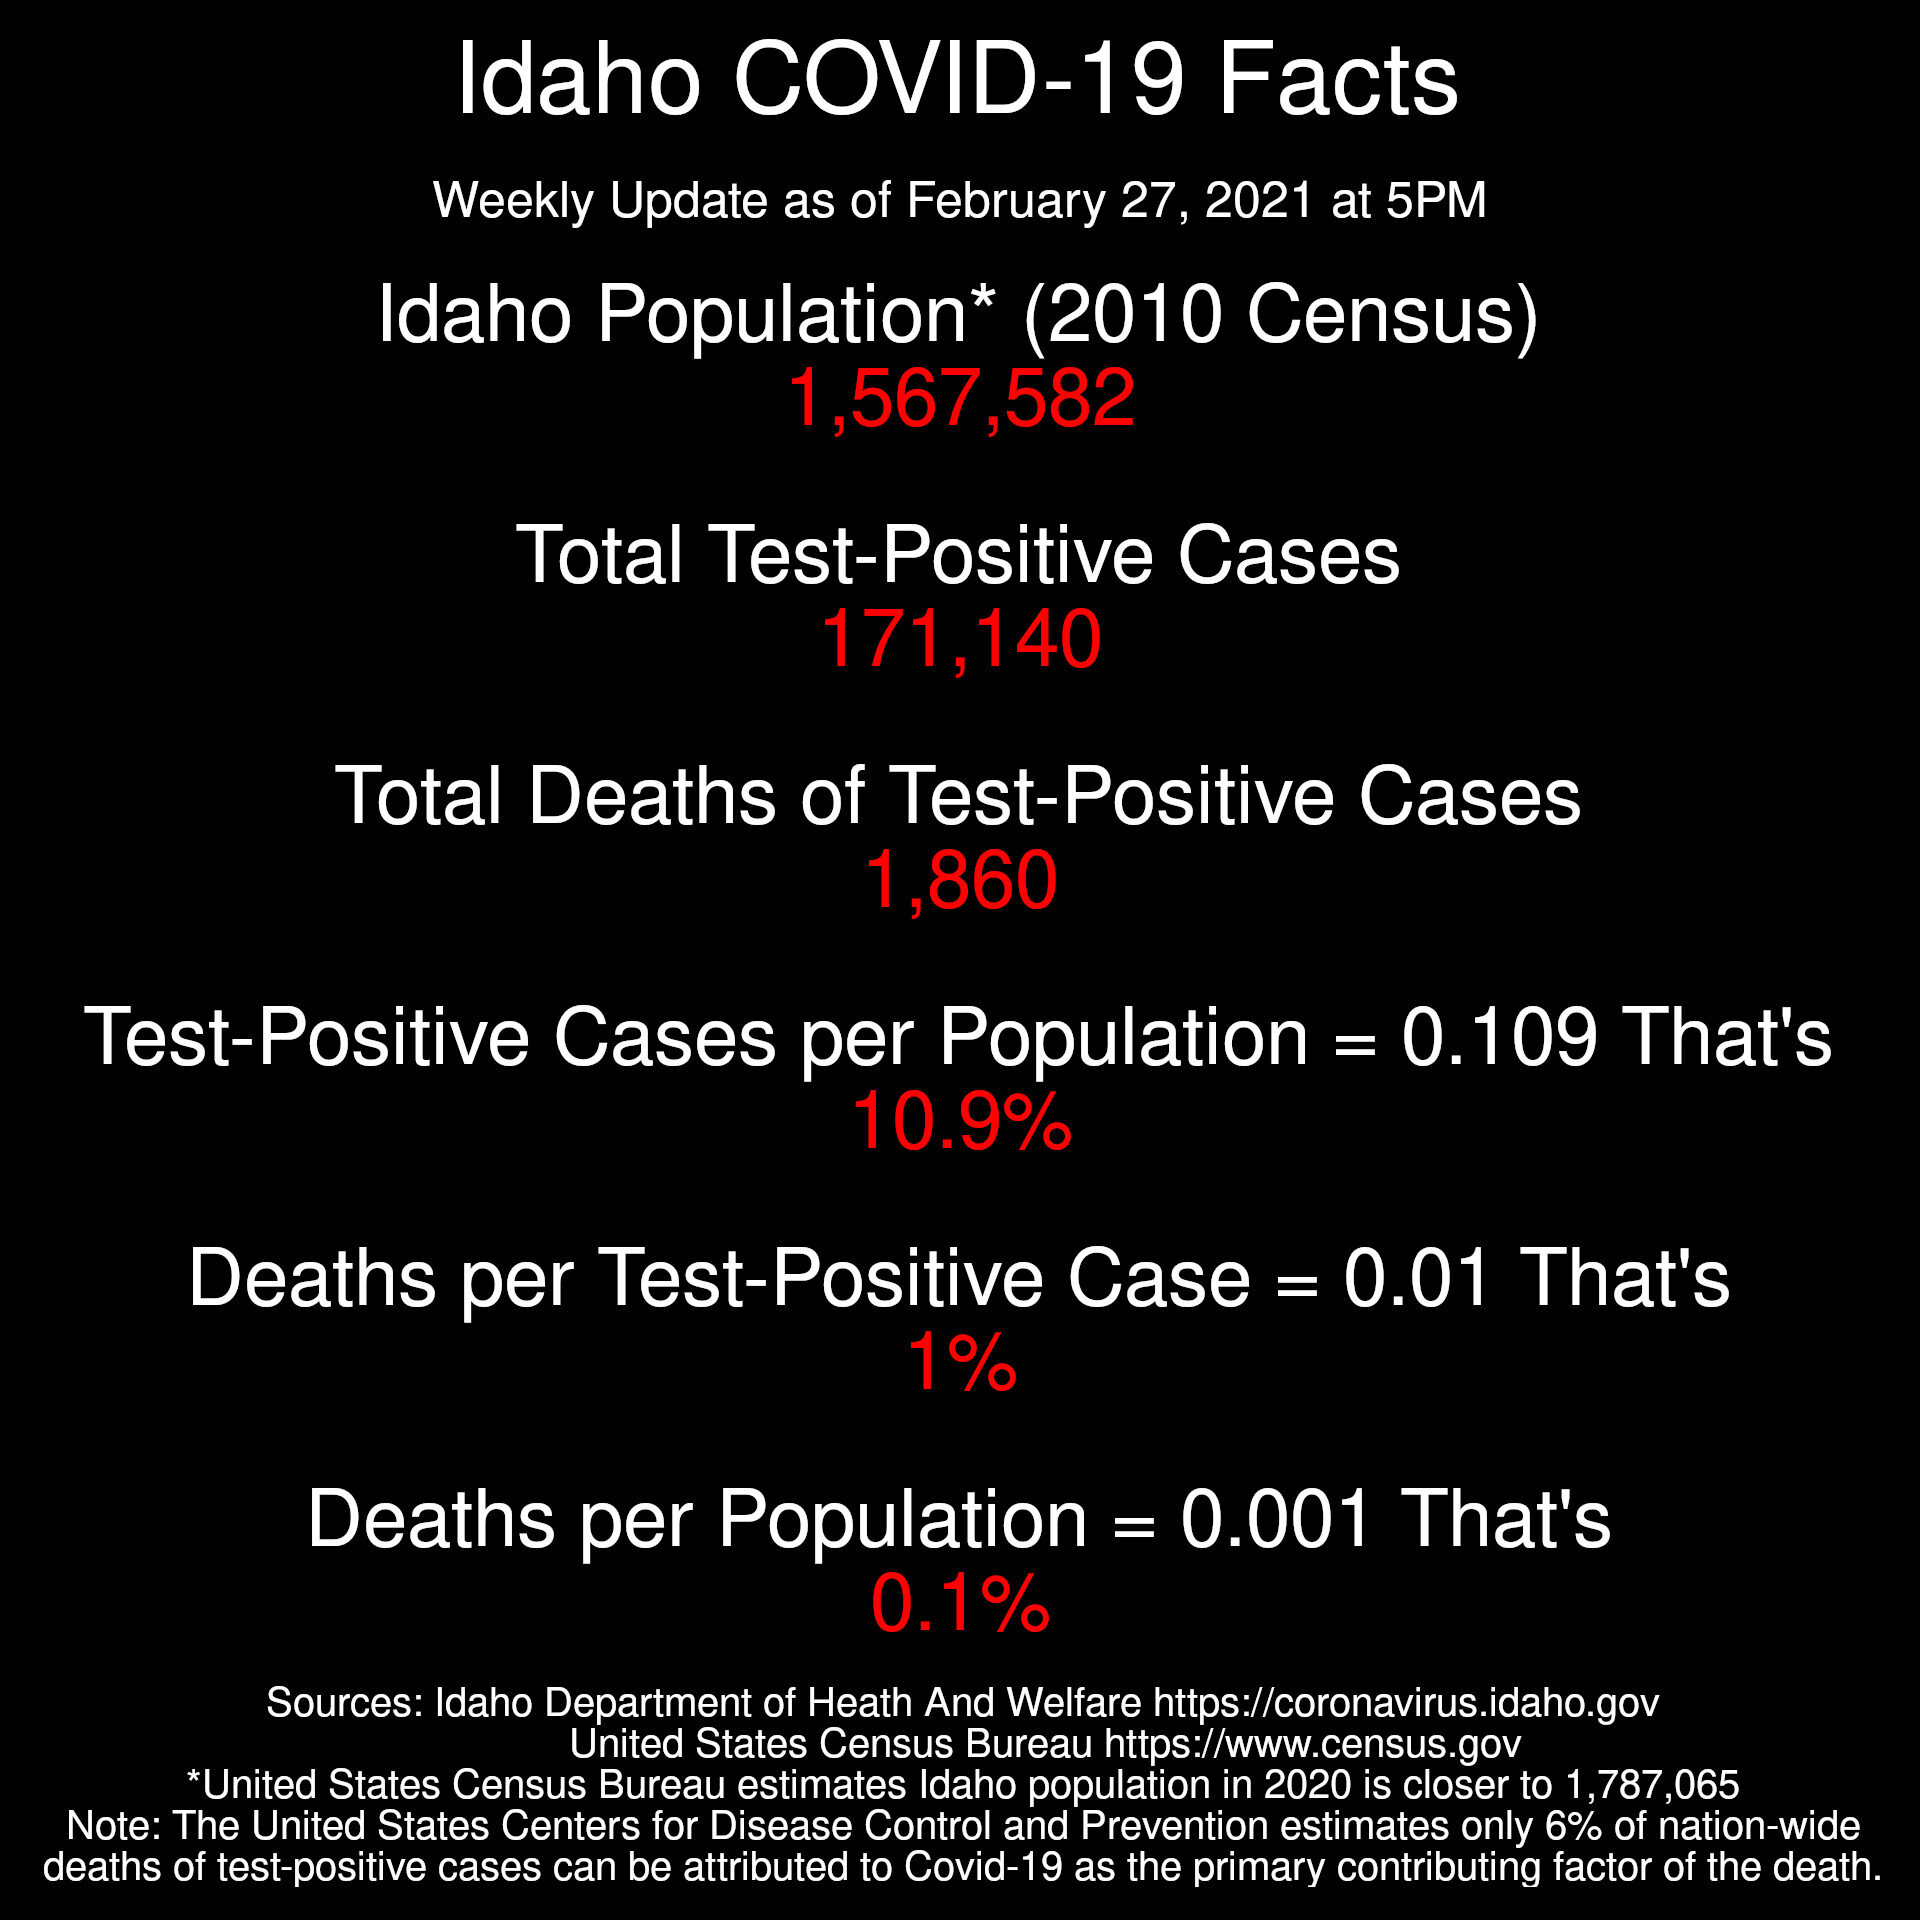 Idaho Coronavirus Facts  Weekly Update as of February 27, 2021 at 5PM  Population* (2010 Census): 1,567,582 Total Test-Positive Cases: 171,140 Total Deaths of Test-Positive Cases: 1,860  Test-Positive Cases per Population = 0.109 That's just 10.9%  Deaths per Test-Positive Case: 0.01 That's just 1%  Deaths per Population: 0.001 That's just 0.1%  Sources: Idaho Department of Heath And Welfare https://coronavirus.idaho.gov United States Census Bureau https://www.census.gov *United States Census Bureau estimates Idaho population in 2020 is closer to 1,787,065 Note: The United States Centers for Disease Control and Prevention estimates only 6% of nation-wide deaths of test-positive cases can be attributed to Covid-19 as the primary contributing factor of the death.